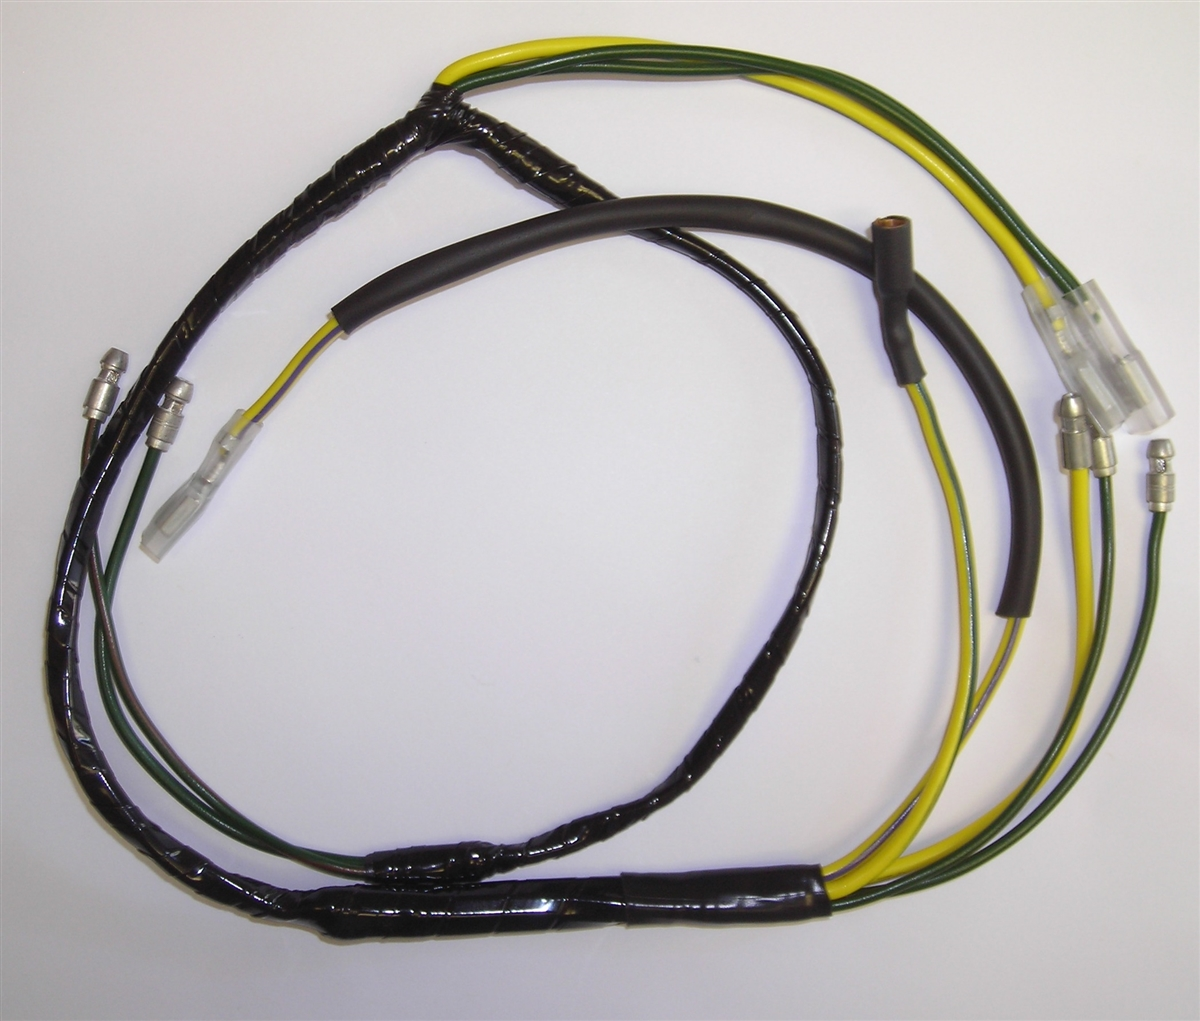 1560 2?1445434201 spitfire j type overdrive wiring harness 73 triumph spitfire 1500 wiring harness at sewacar.co